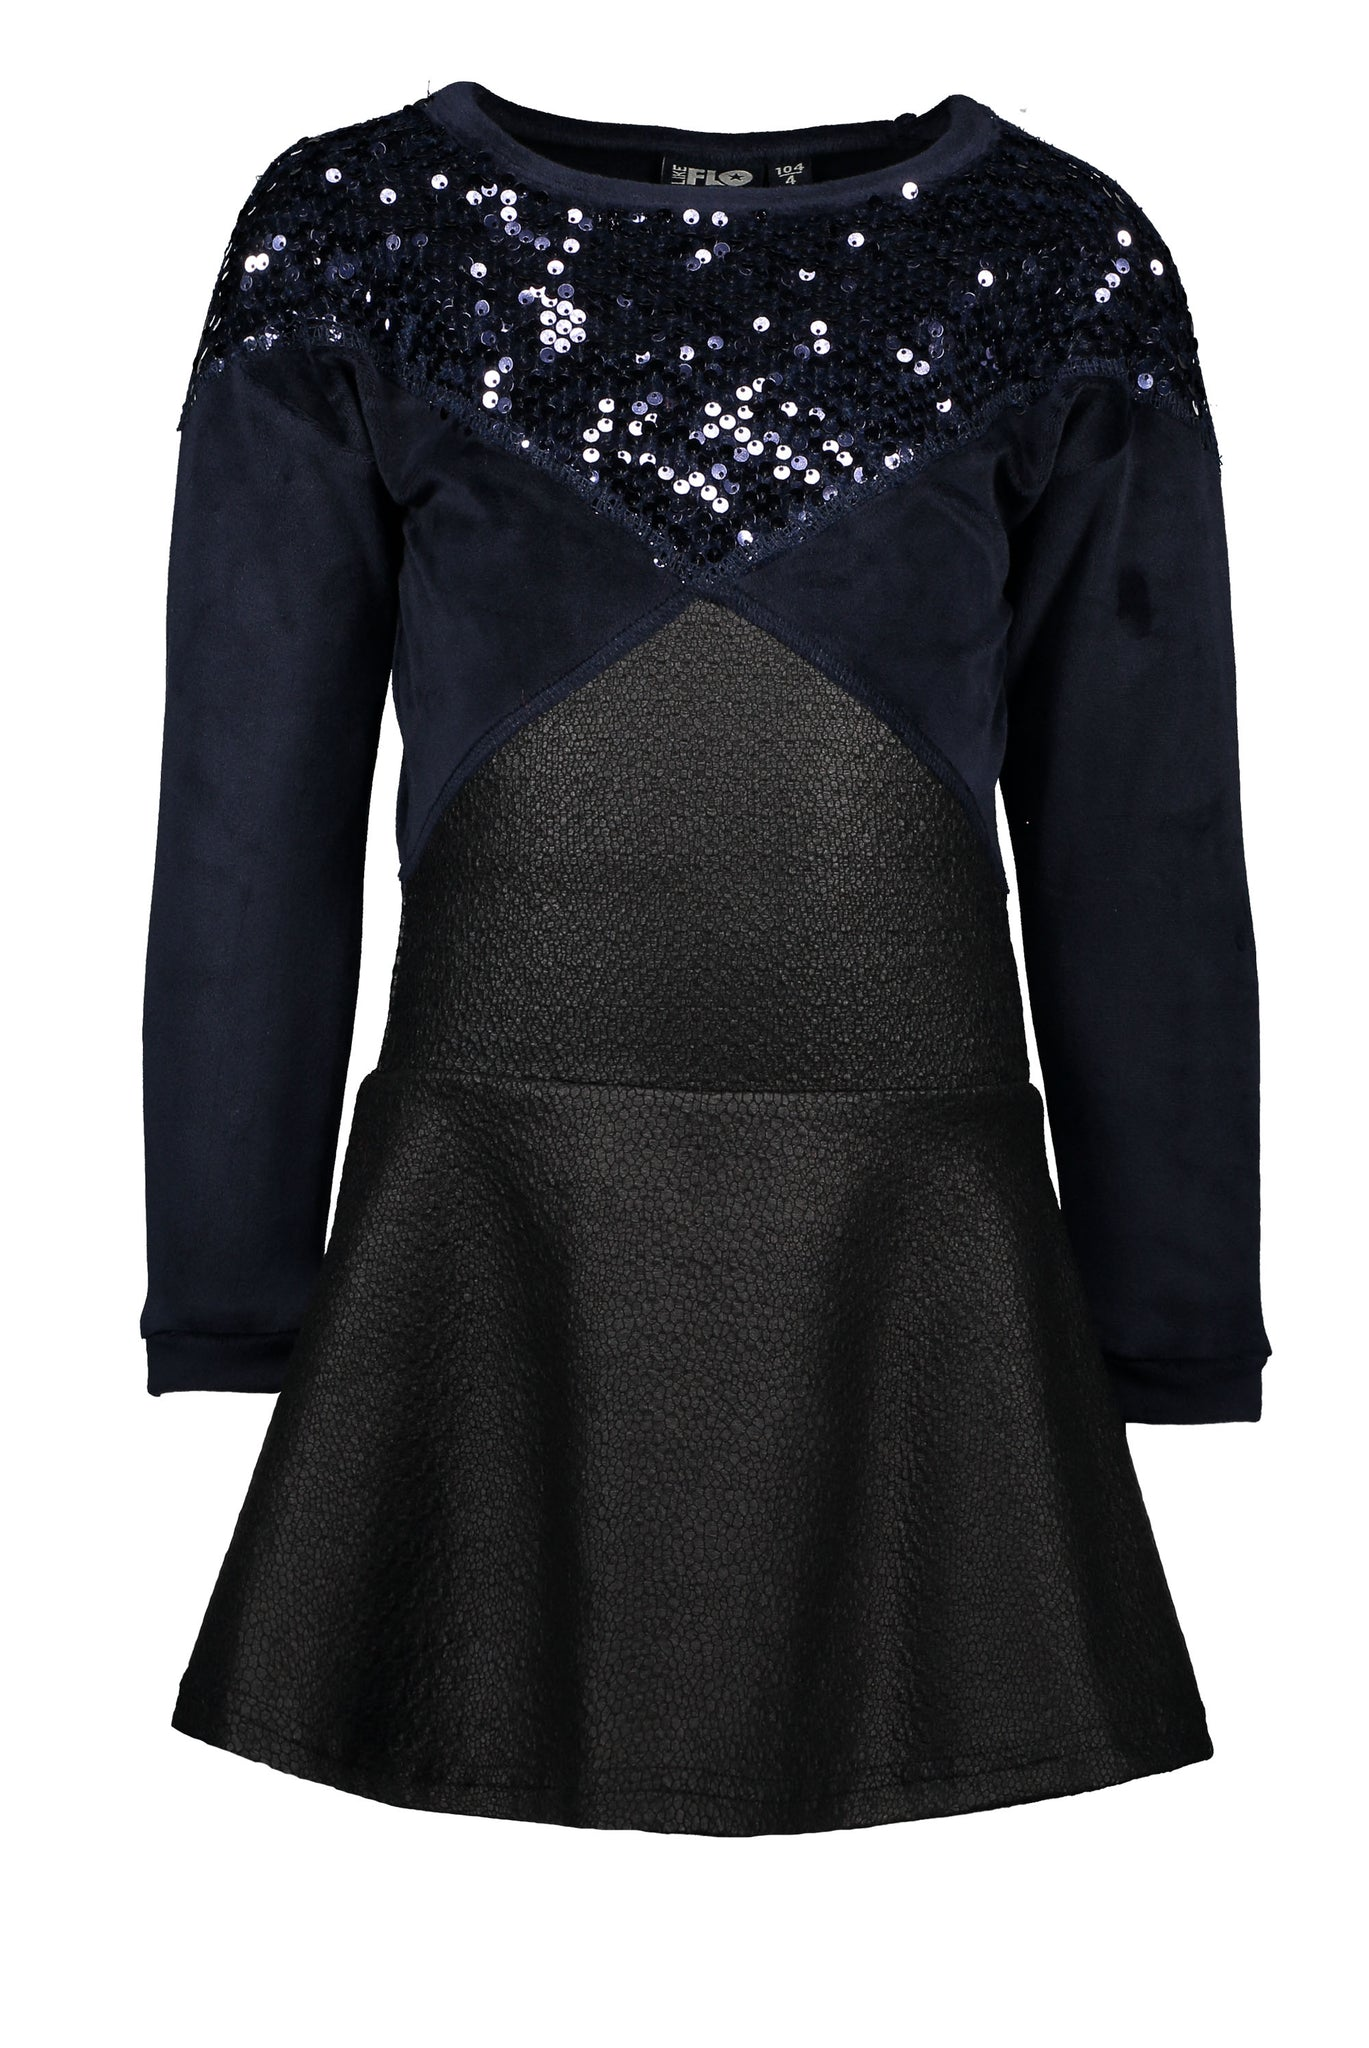 FLO Girls Dress with Sequin